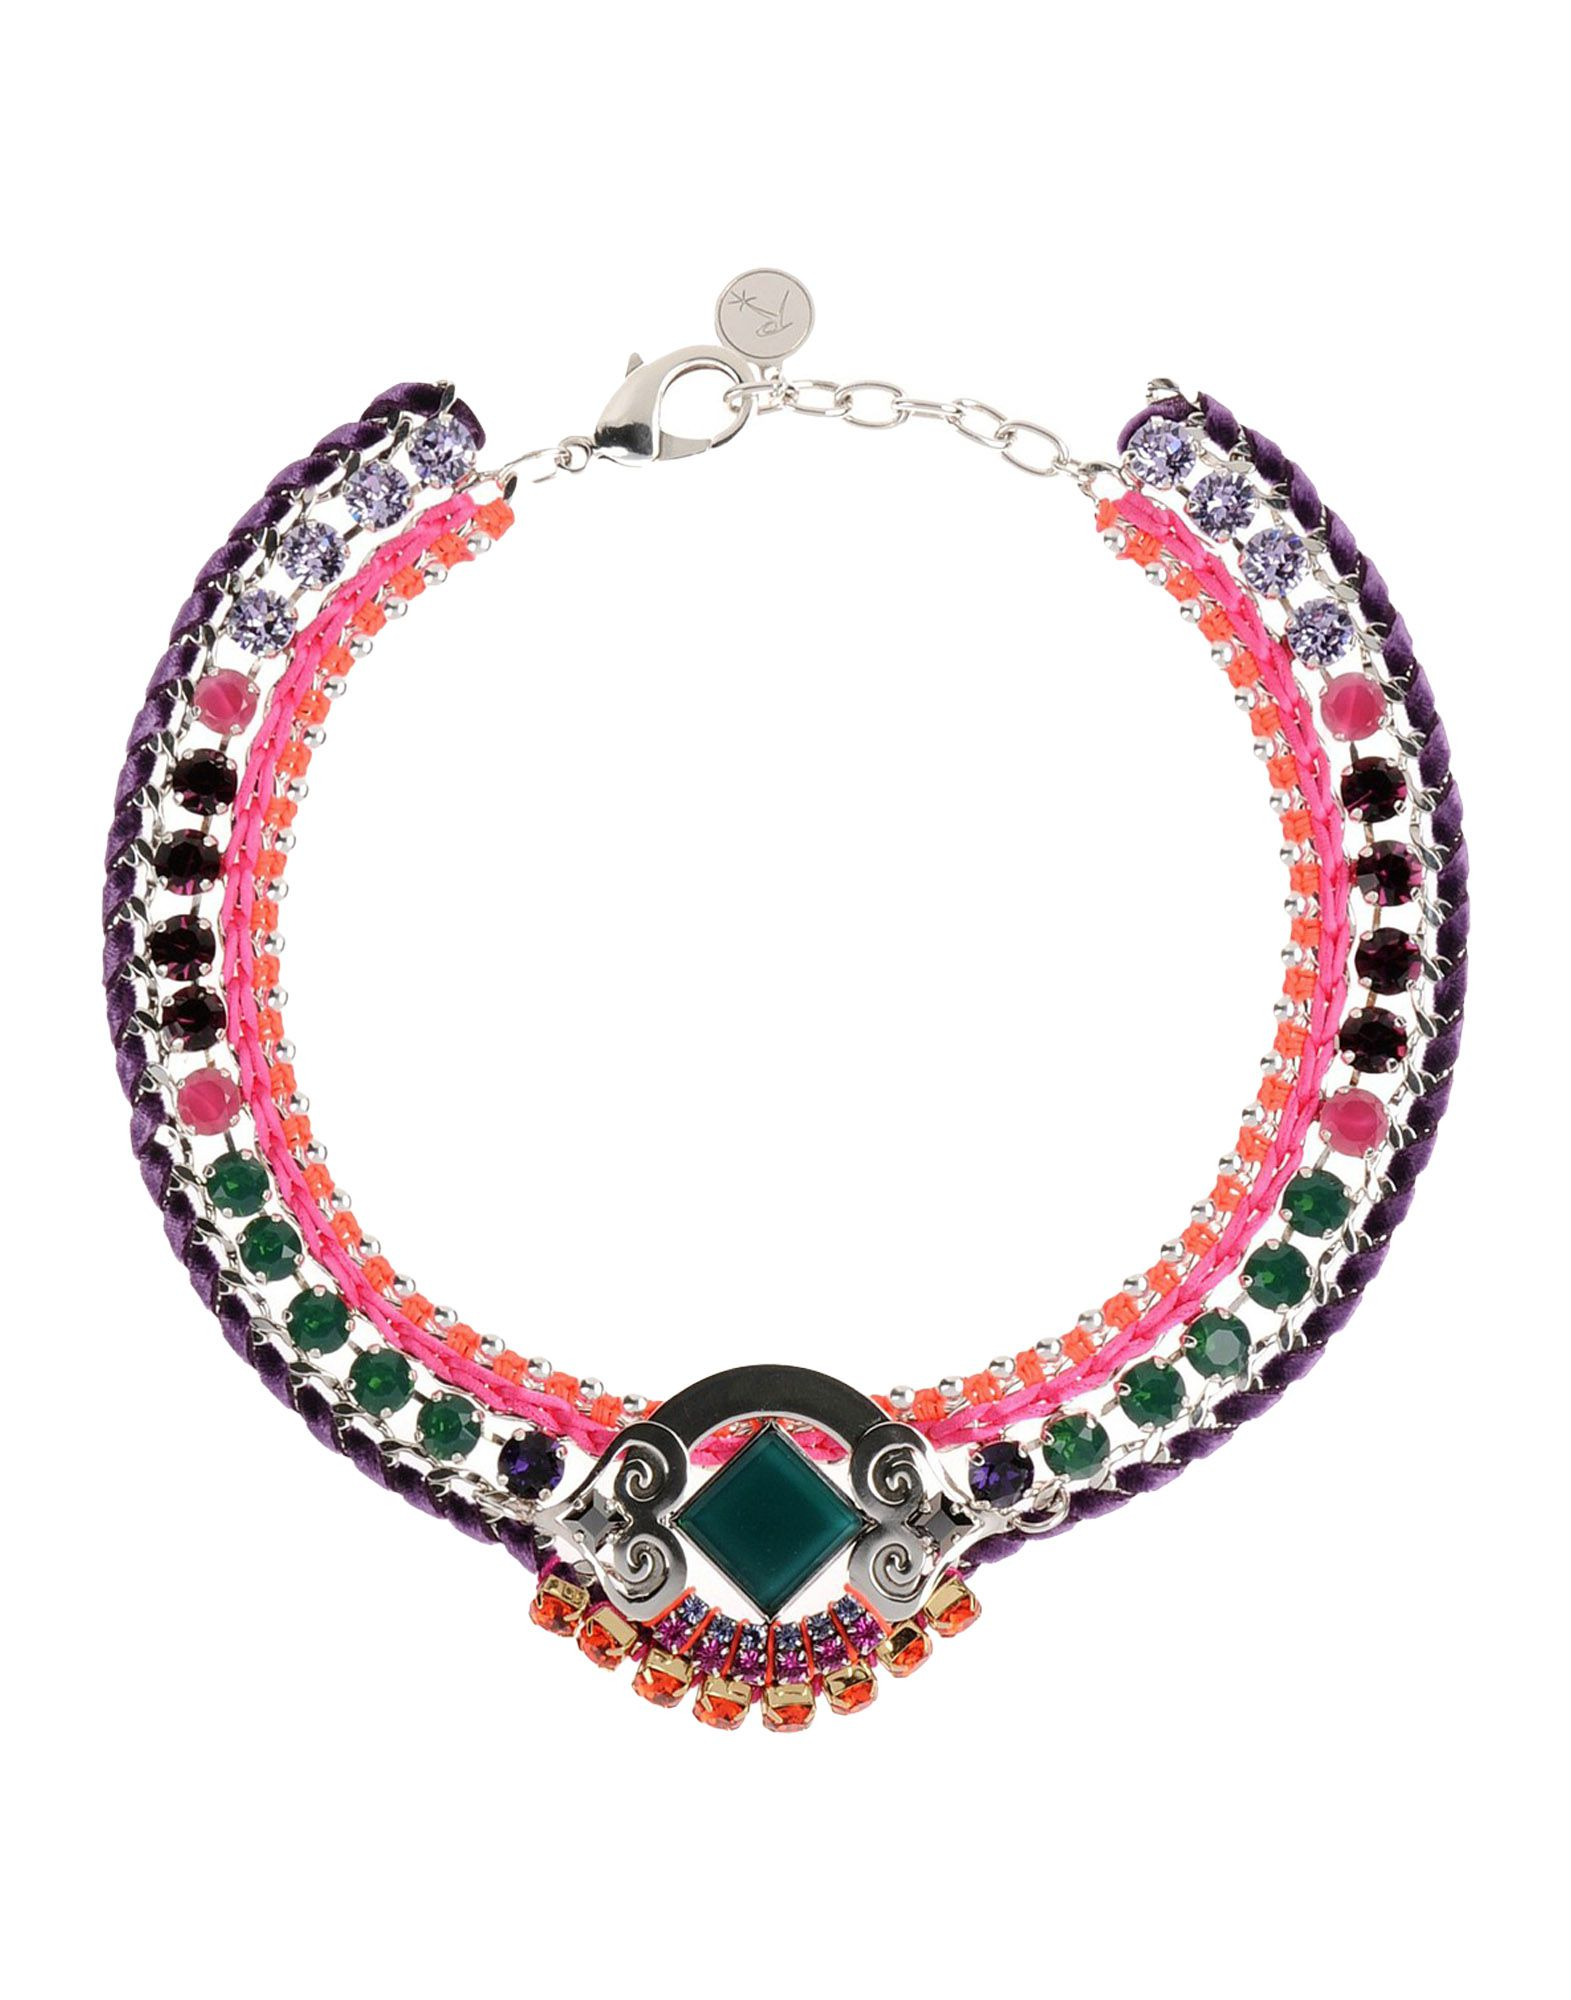 REMINISCENCE Necklace in Fuchsia